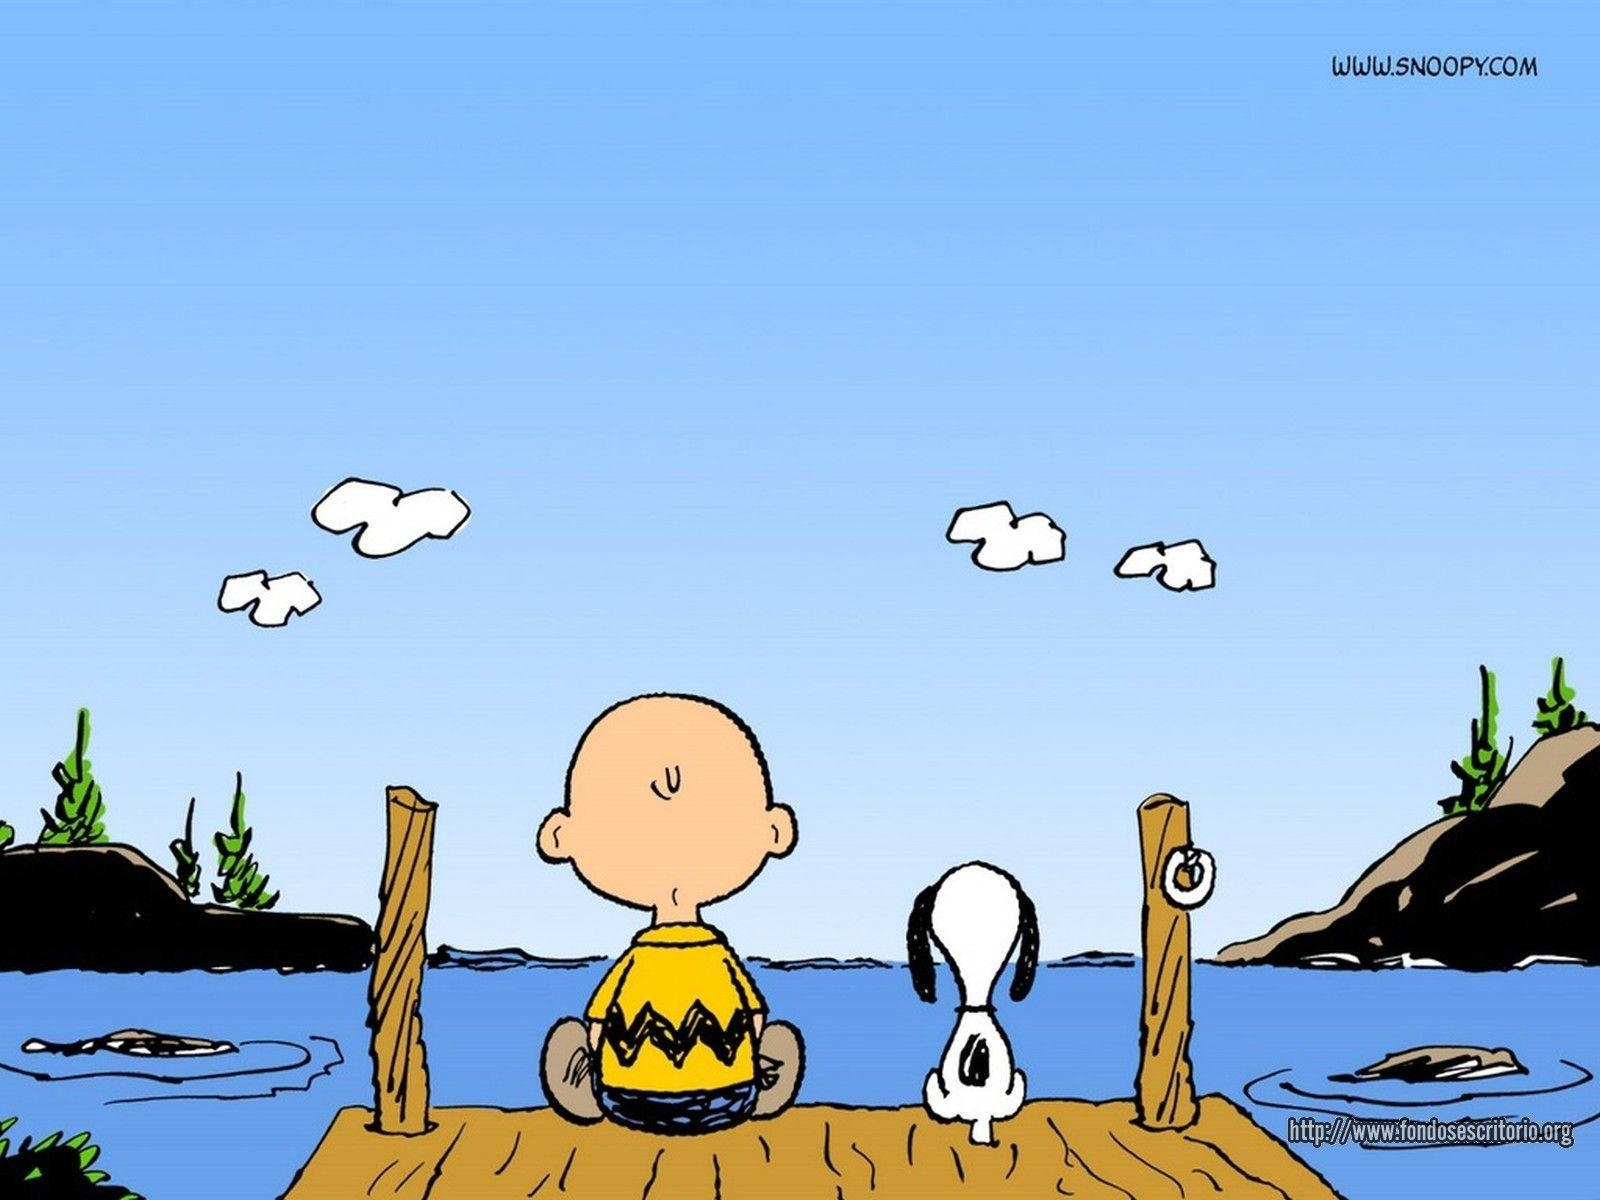 snoopy desktop wallpapers - wallpaper cave